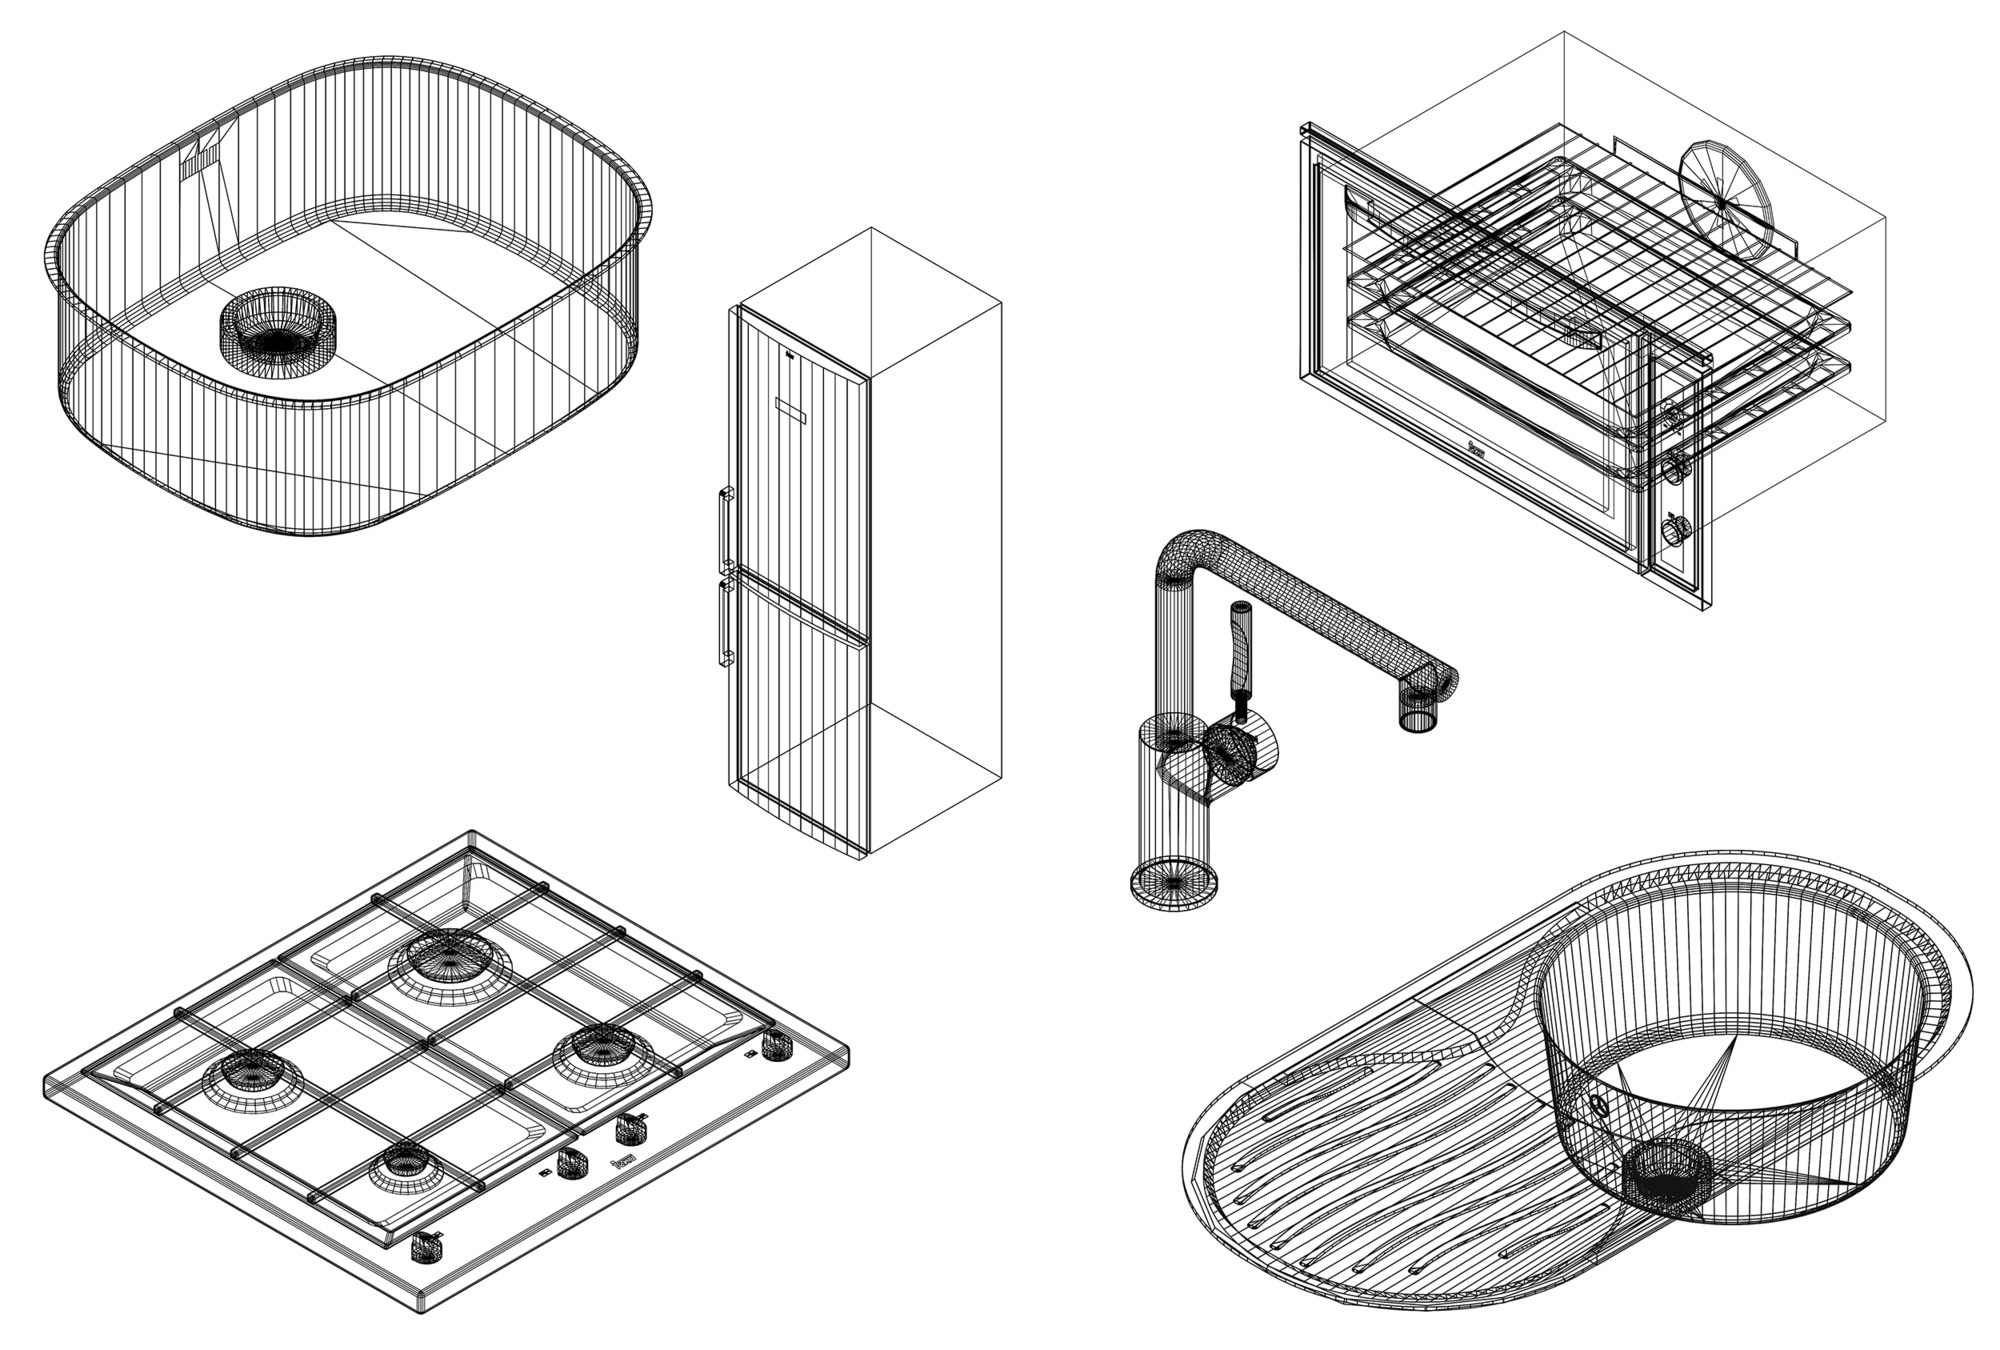 Stoves Sinks And Refrigerators Downloadable Cad Blocks For Kitchen Designs Archdaily